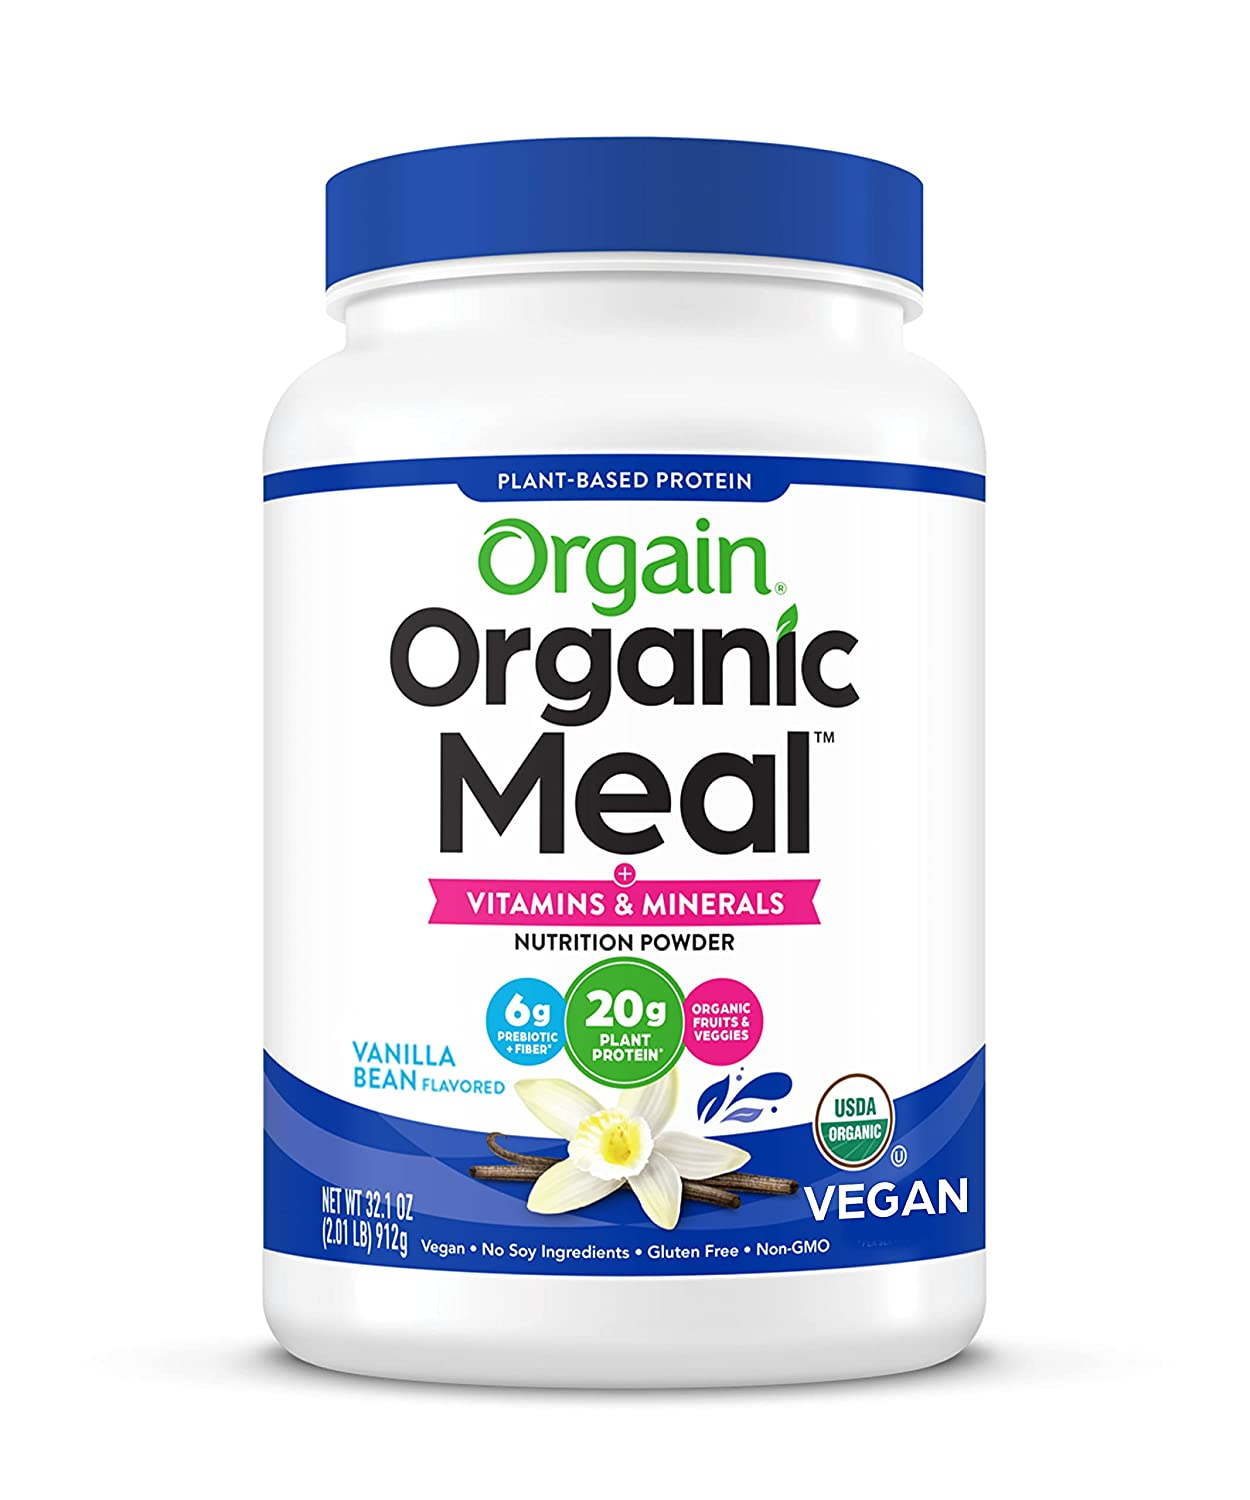 Vegan Protein Meal Replacement Powder - Fort Worth Mall Certified by Orga Orgain Nashville-Davidson Mall